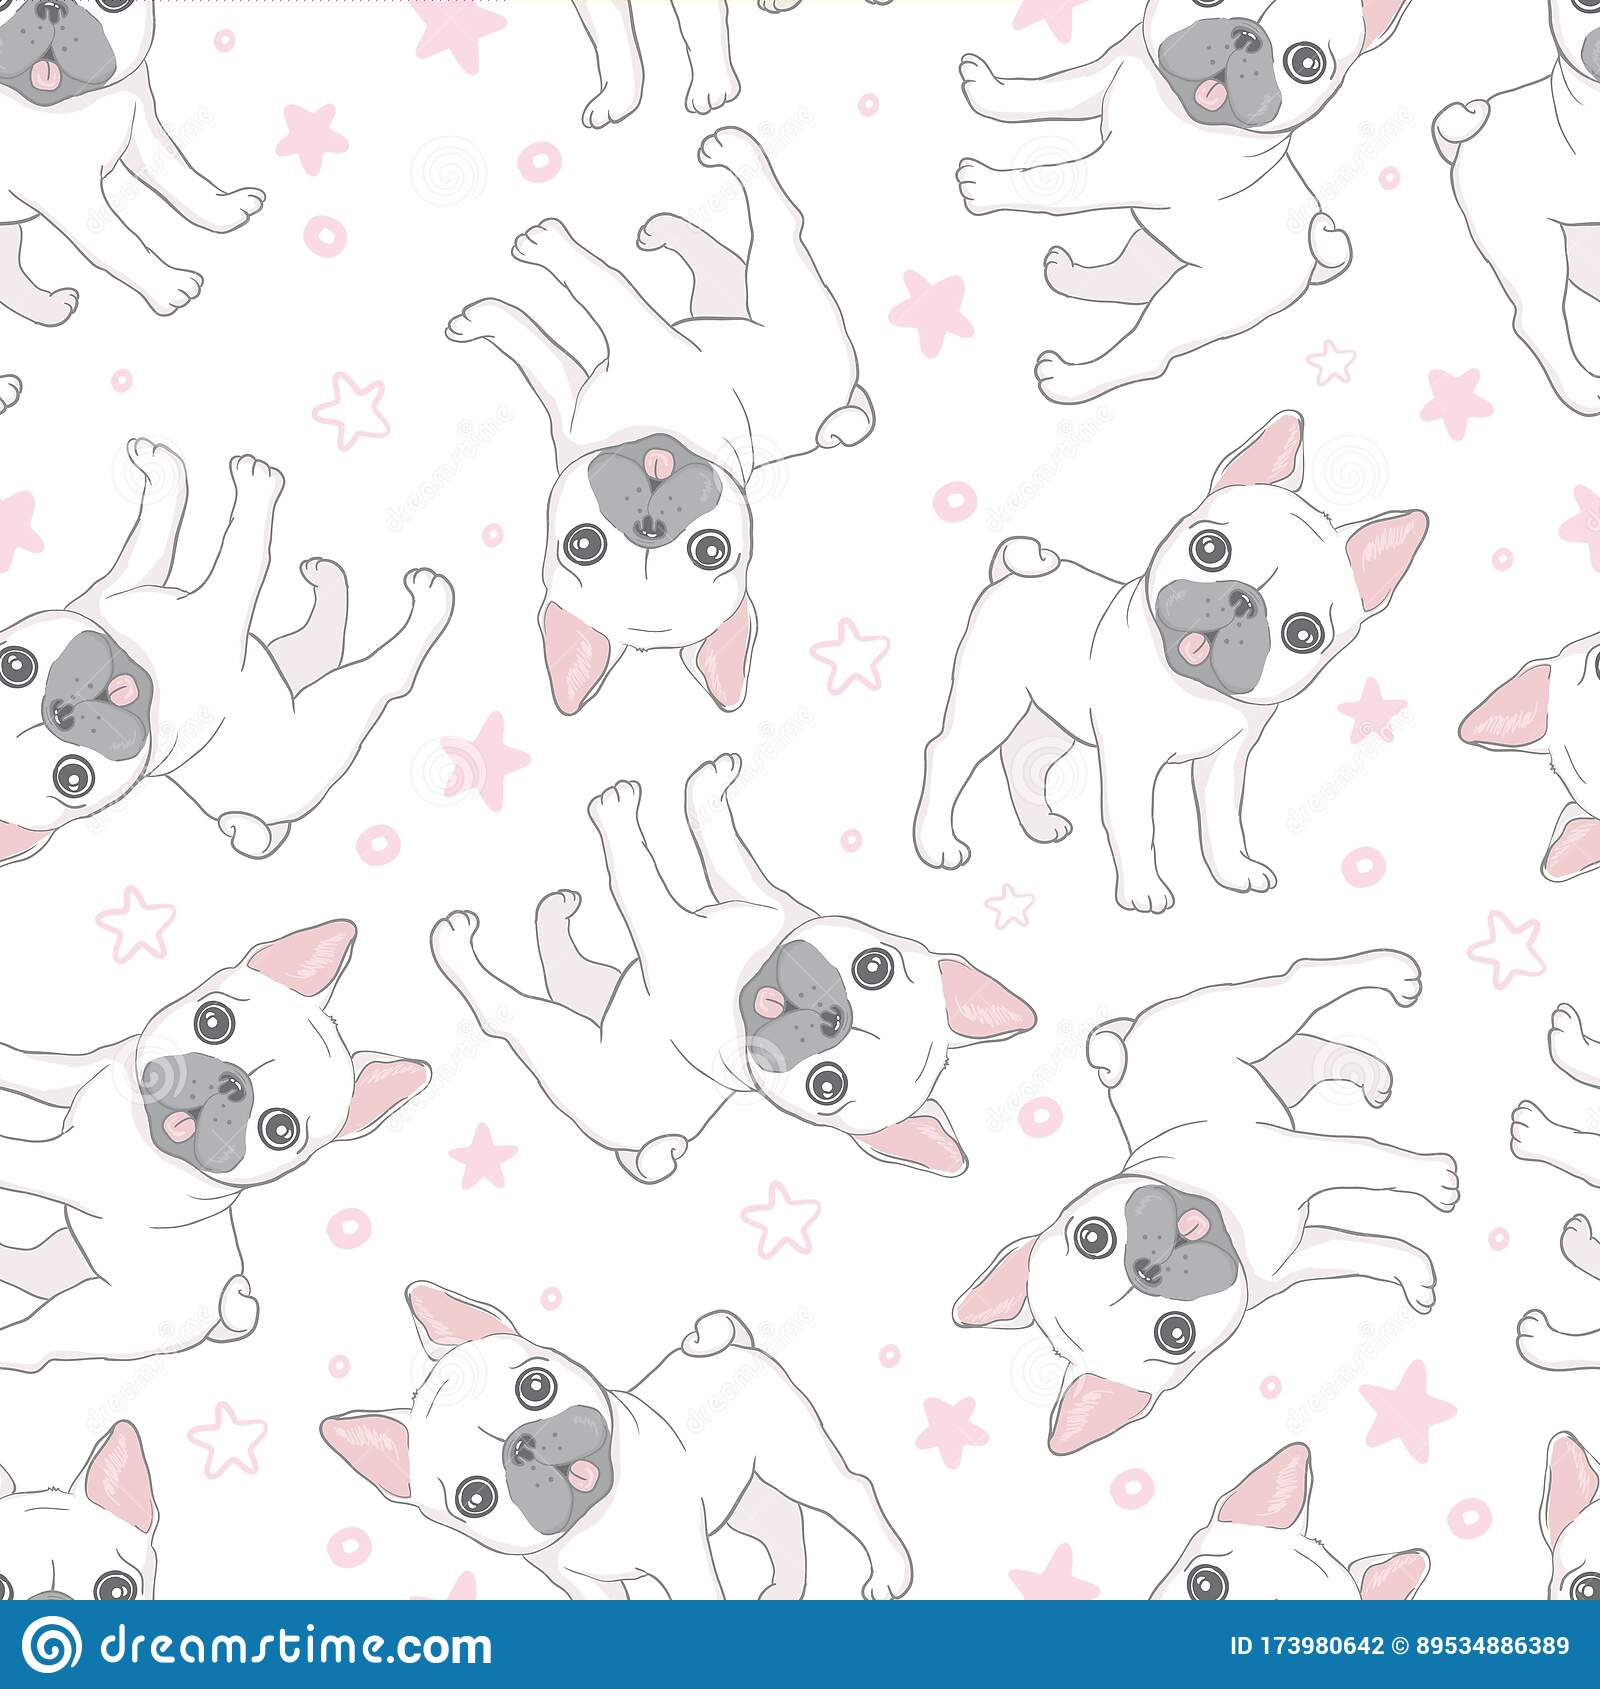 Dog Seamless Pattern French Bulldog Paw Vector Repeat Background Tile Cartoon Wallpaper Isolated Black Stock Vector Illustration Of Dachshund Doodle 173980642